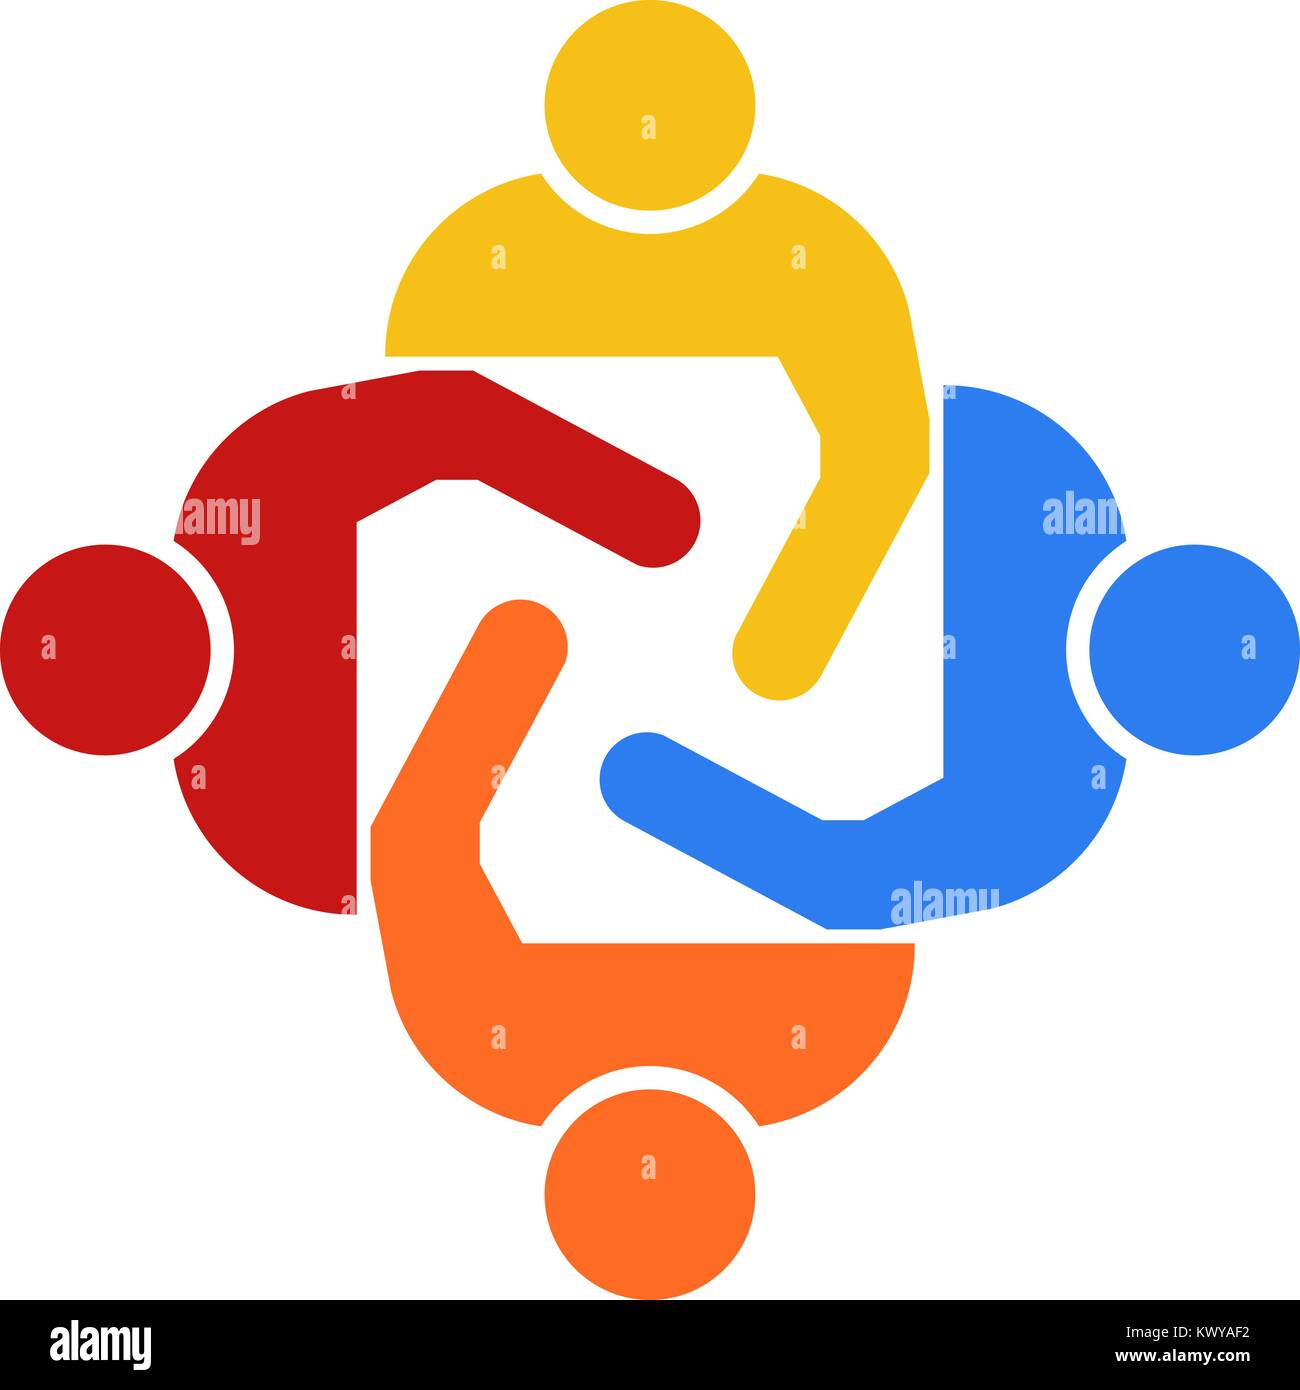 Teamwork Group of Four People Vector Illustration - Stock Vector